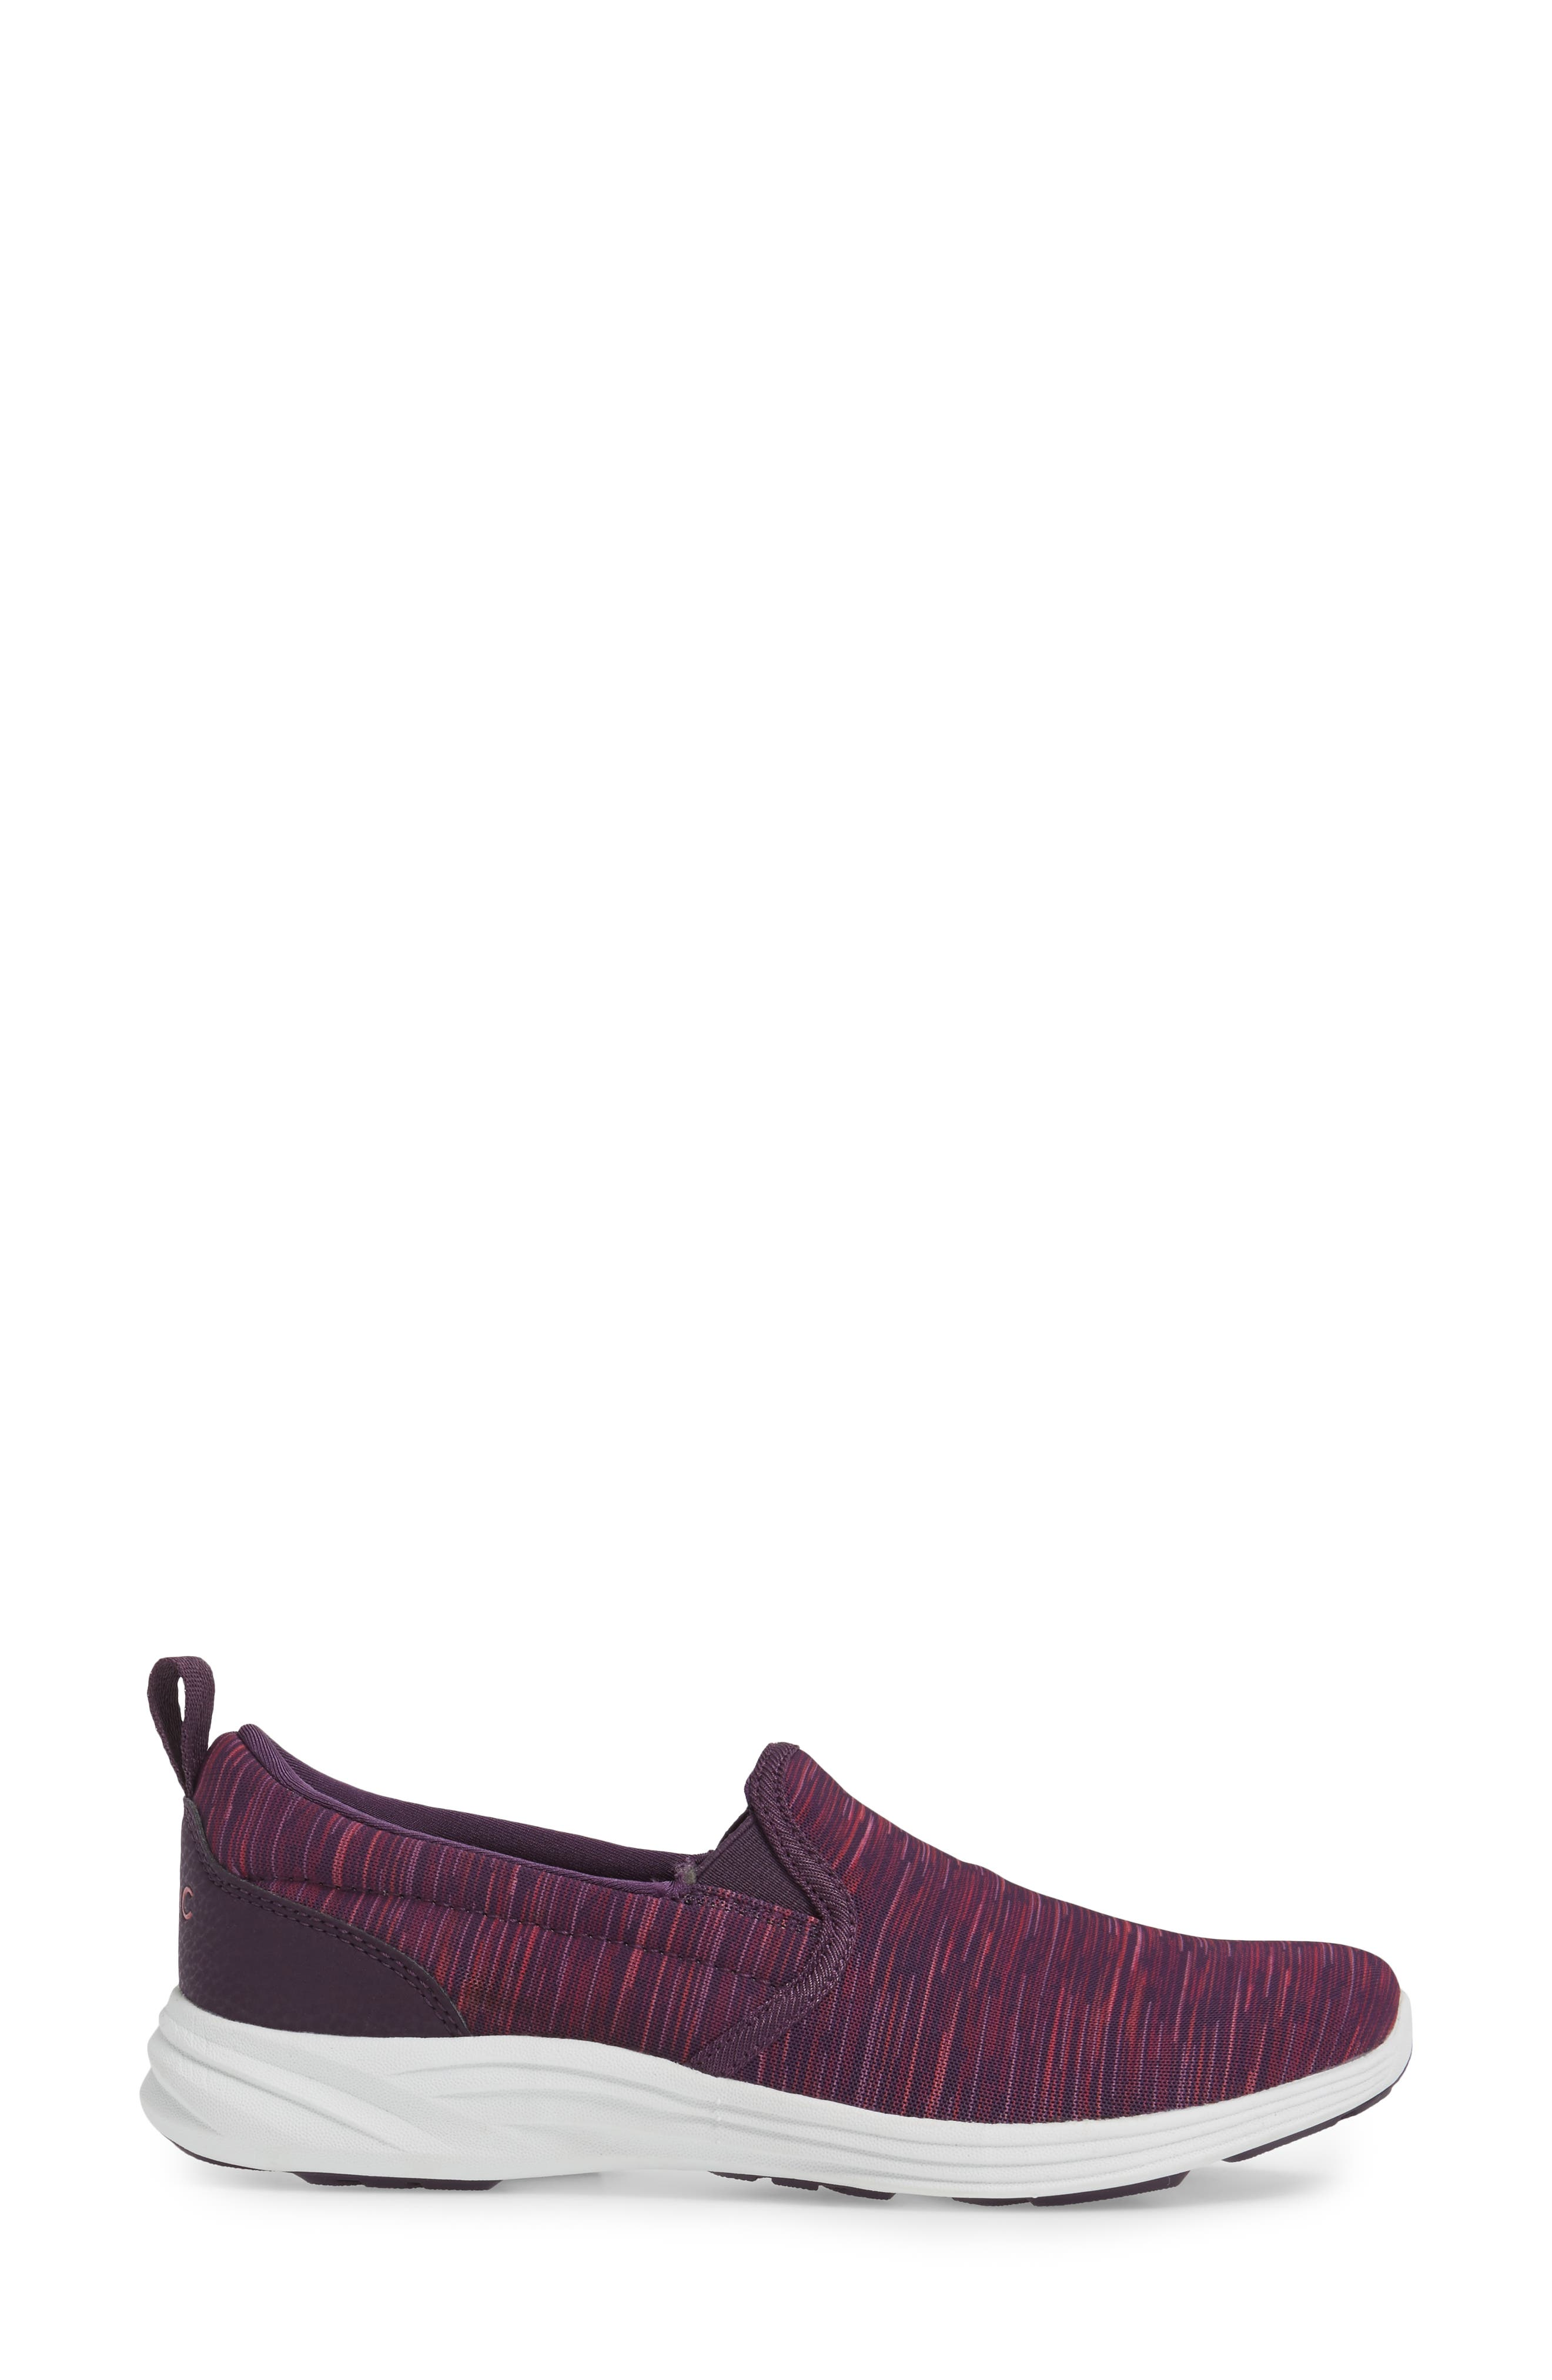 'Kea' Slip-On Sneaker,                             Alternate thumbnail 3, color,                             552